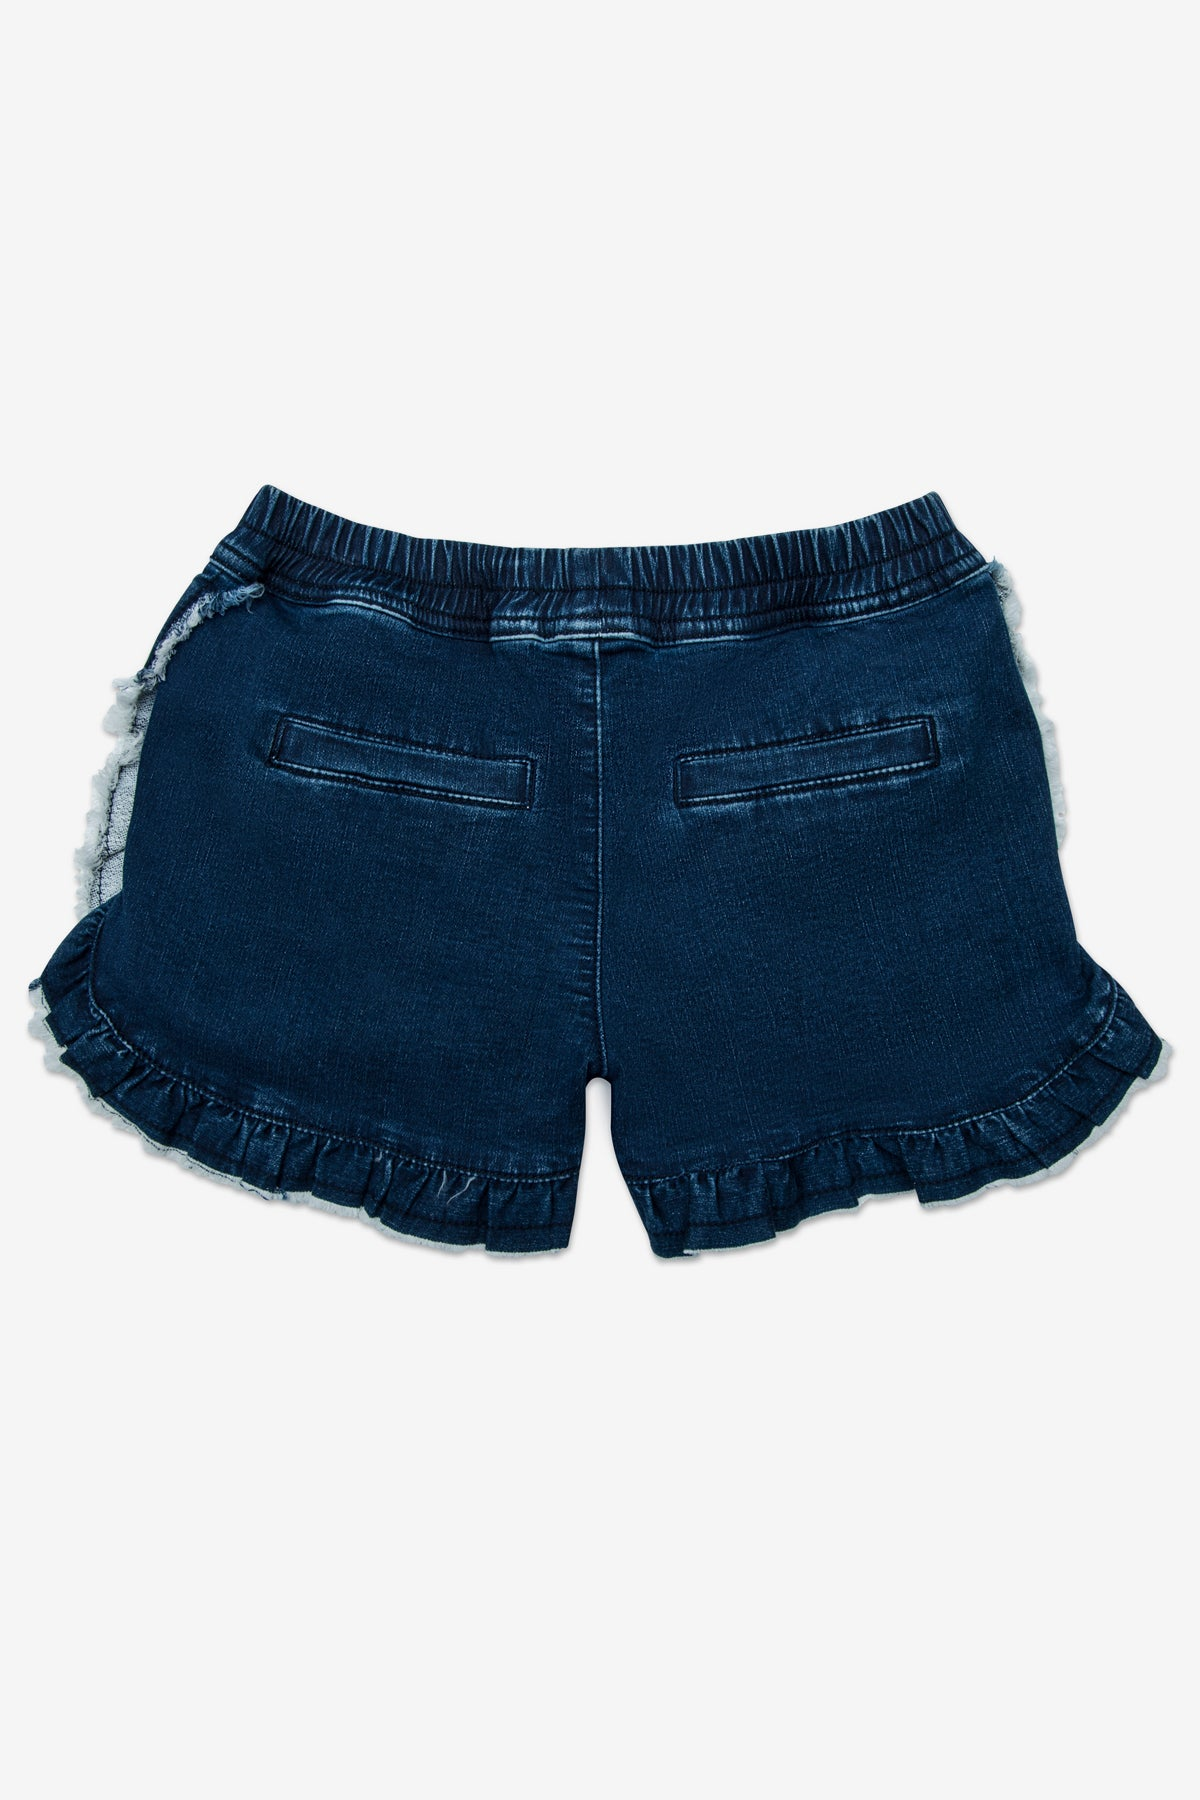 AG Jeans Kids Lilly Girls Short (Size 4 left)